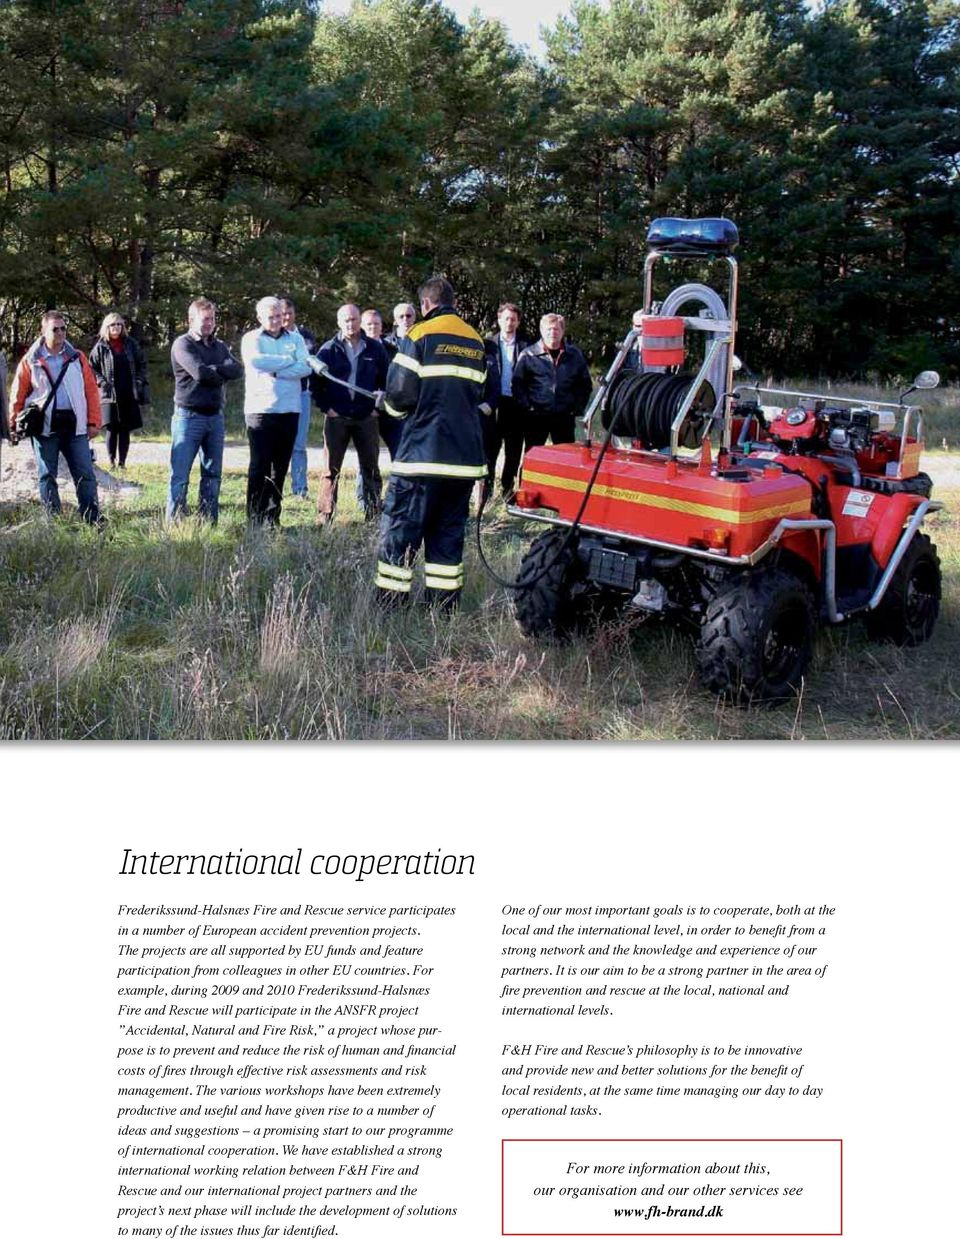 For example, during 2009 and 2010 Frederikssund-Halsnæs Fire and Rescue will participate in the ANSFR project Accidental, Natural and Fire Risk, a project whose purpose is to prevent and reduce the